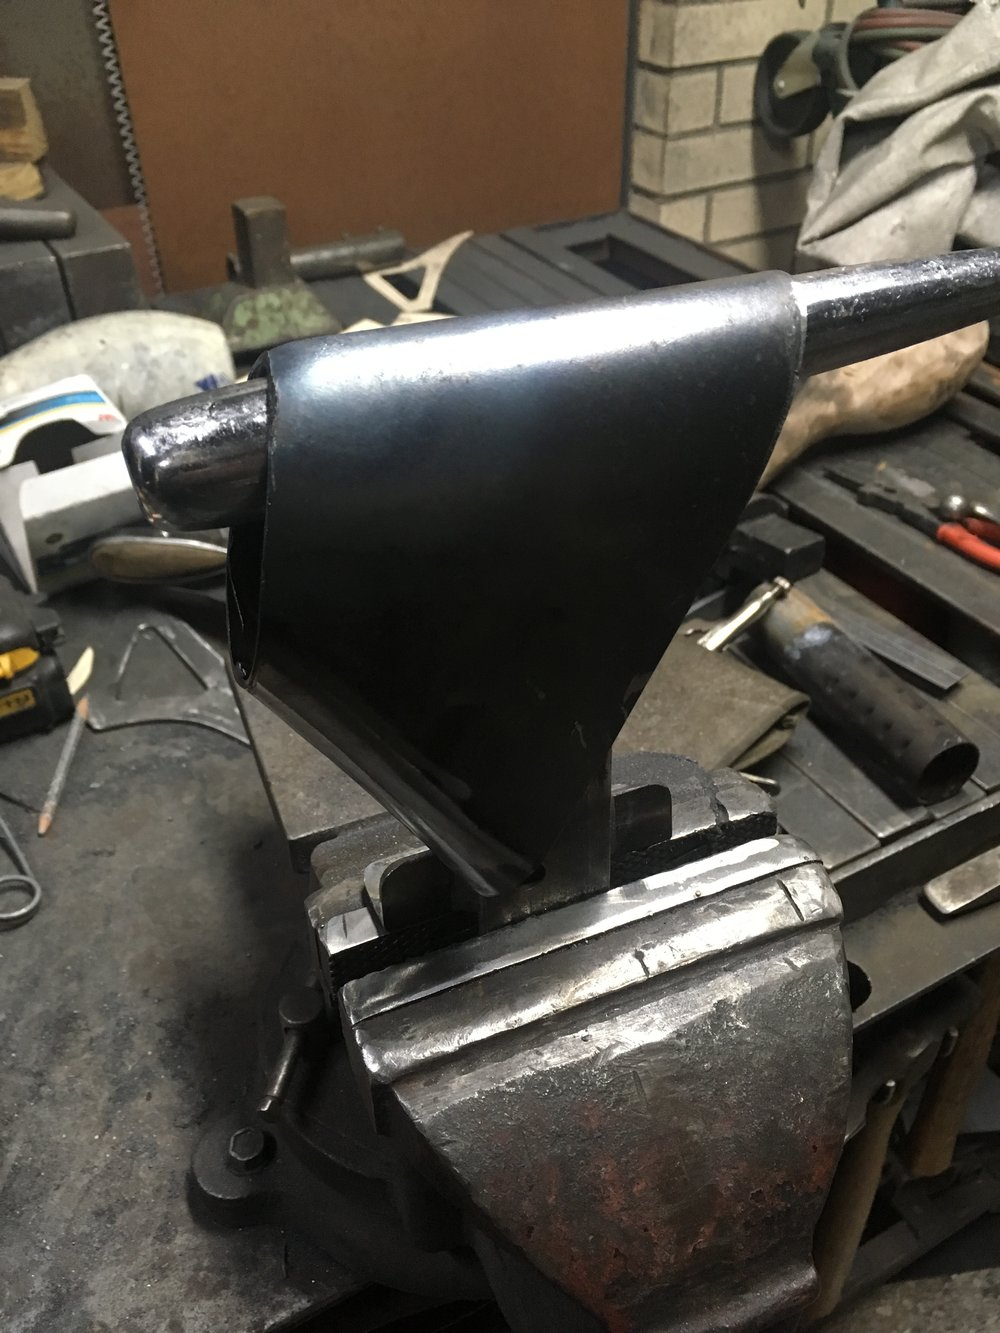 While working on the exhaust tails, it occurred to me this is how cowbells are made. The exhaust now has more cowbell.